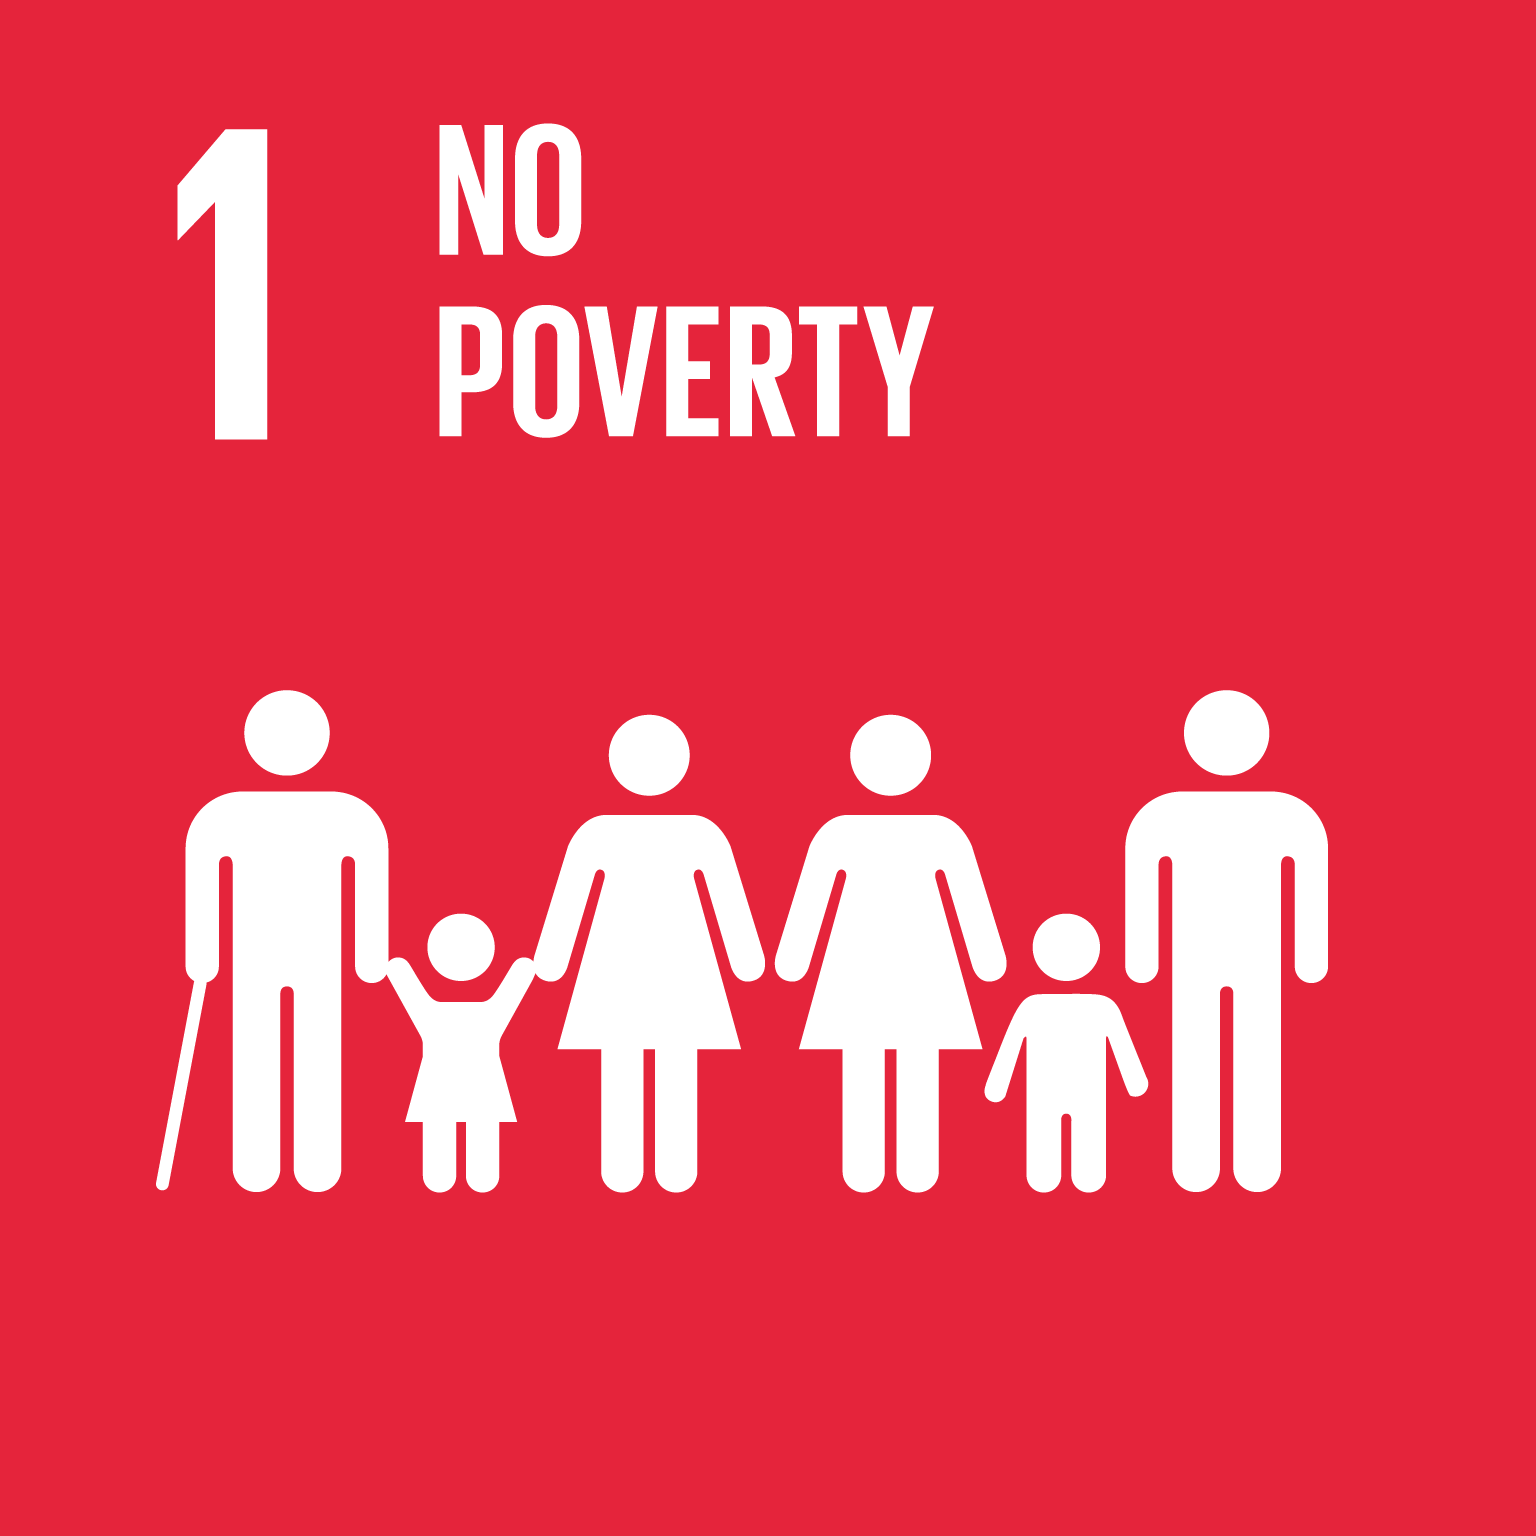 【SDGs logo】NO POVERTY